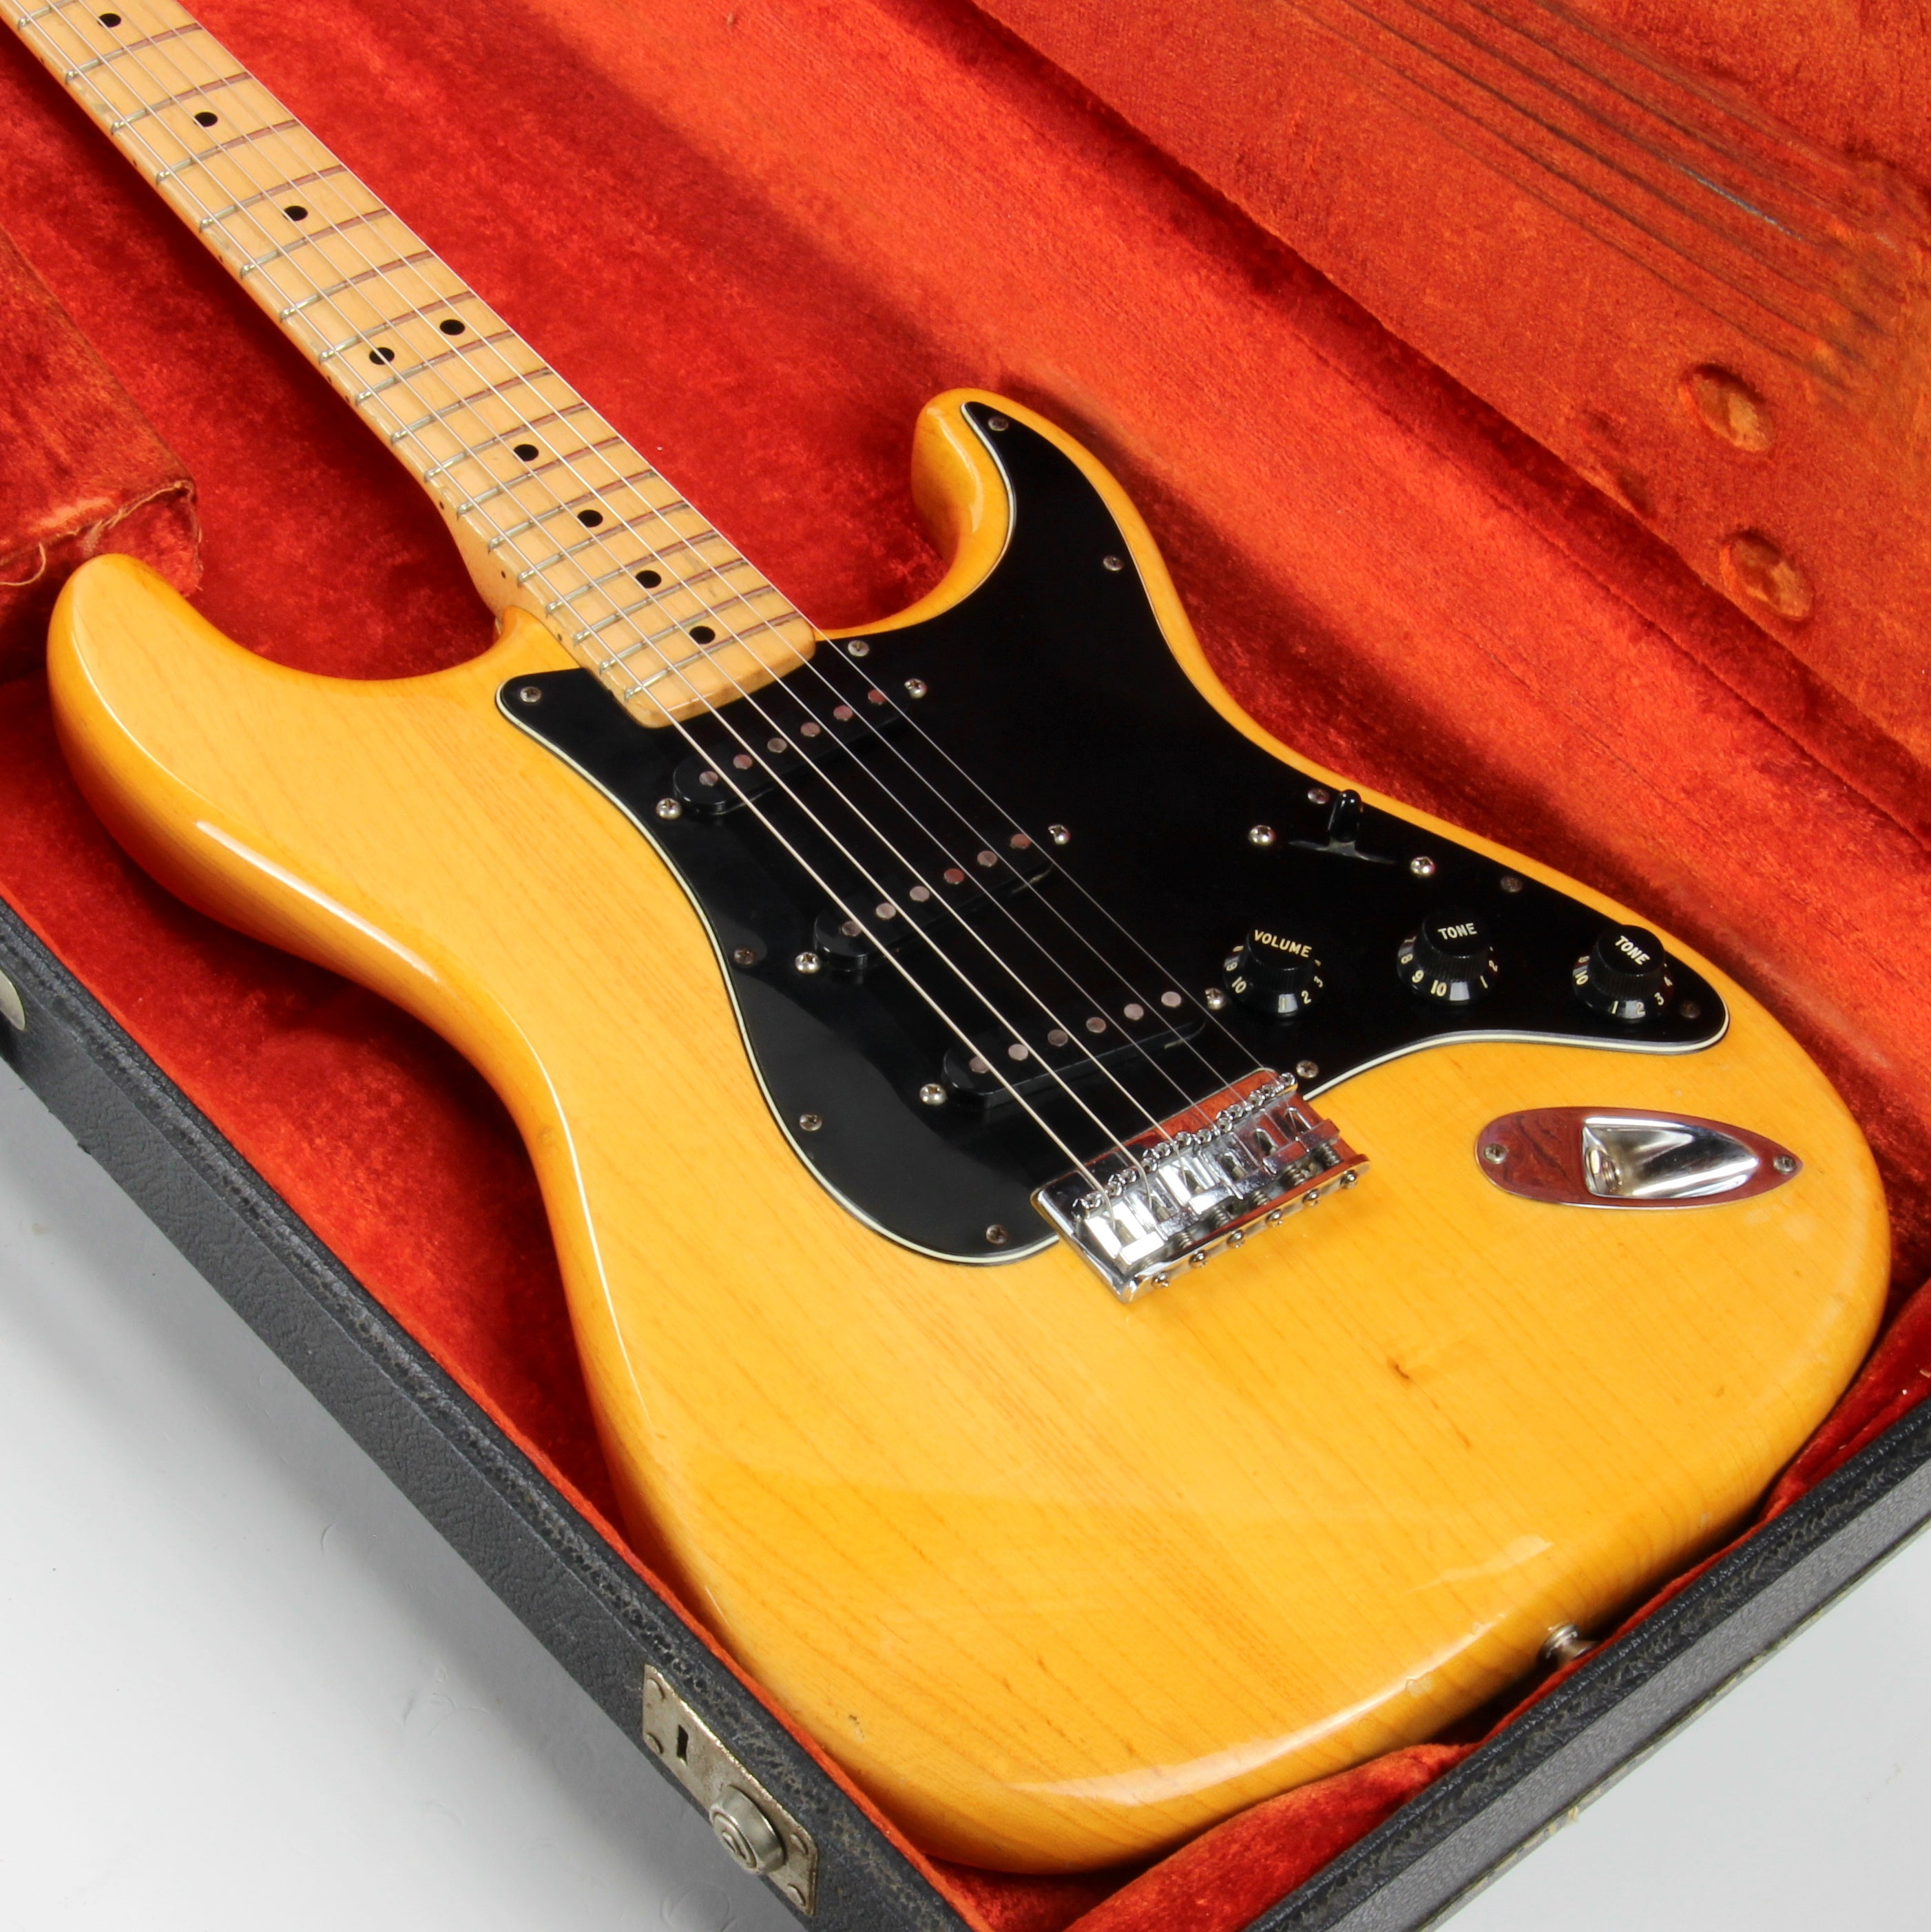 LIGHT! 1977 Fender Stratocaster FLAMED ASH Natural - Maple Neck Strat Vintage USA 1970's Hardtail